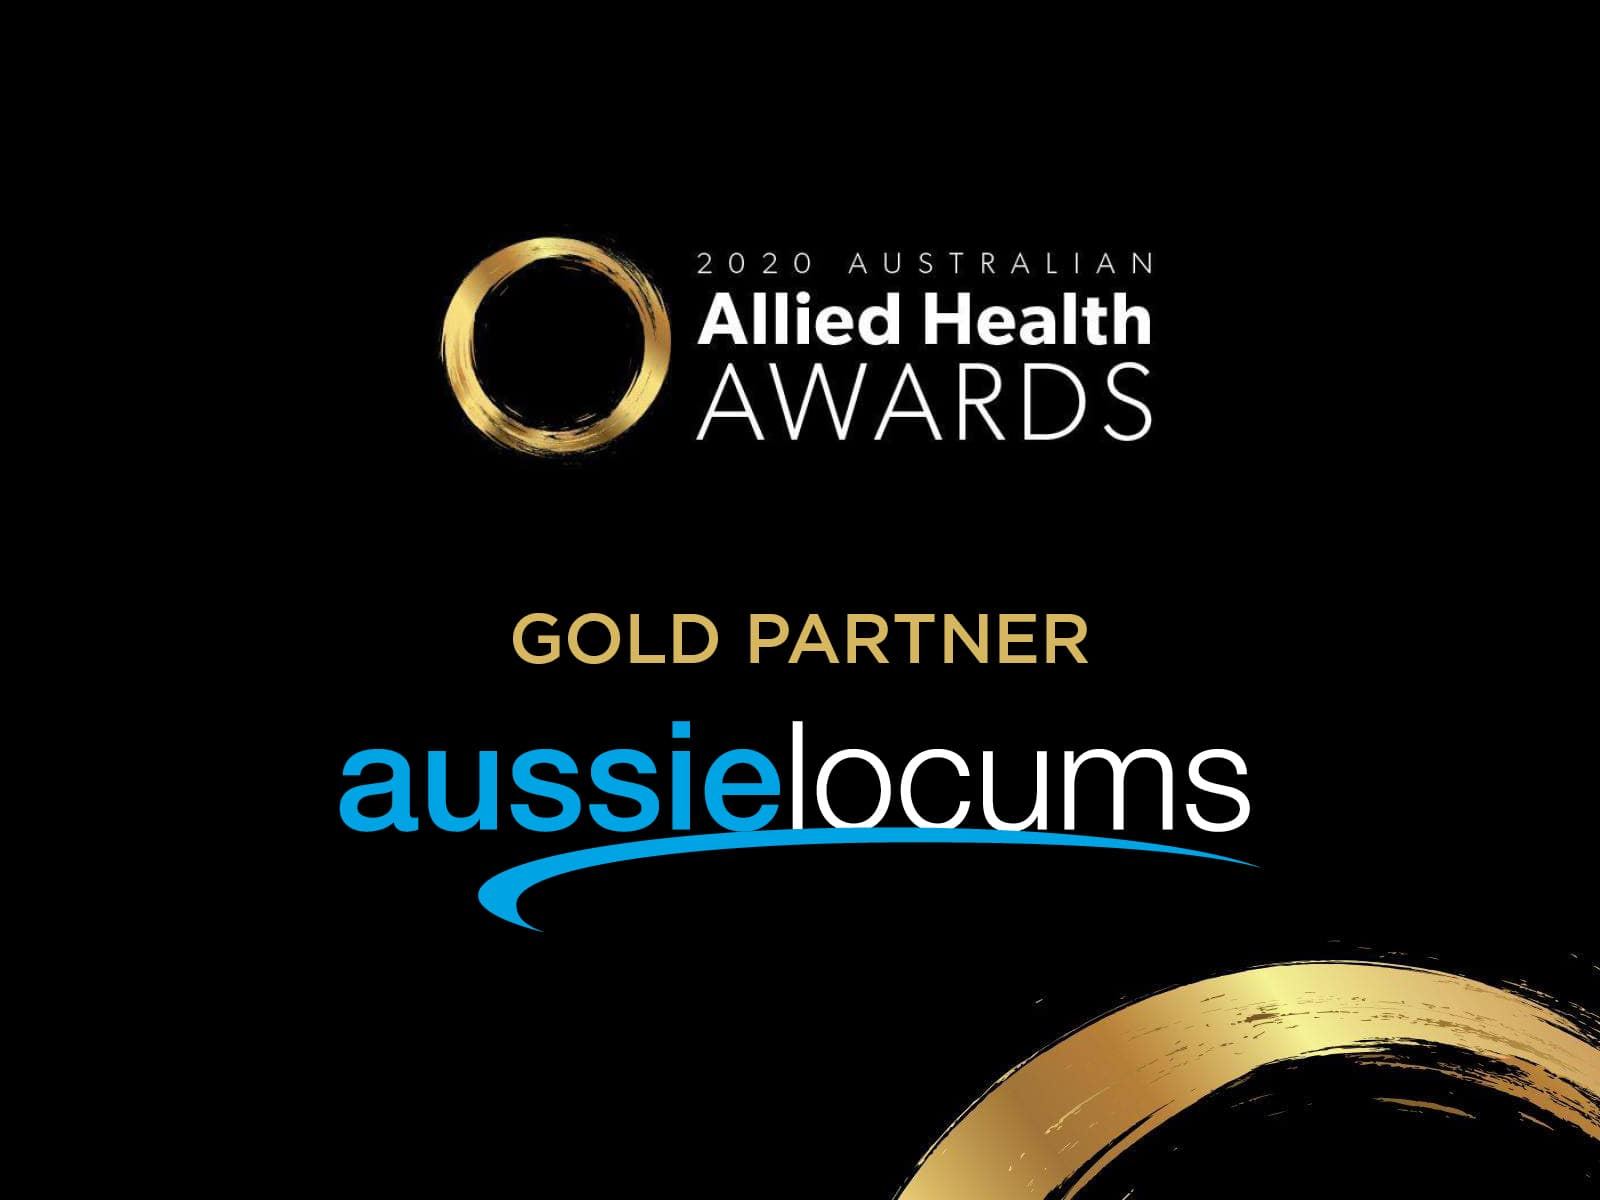 Gold Sponsorship Announcement for the 2020 Australian Allied Health Awards!